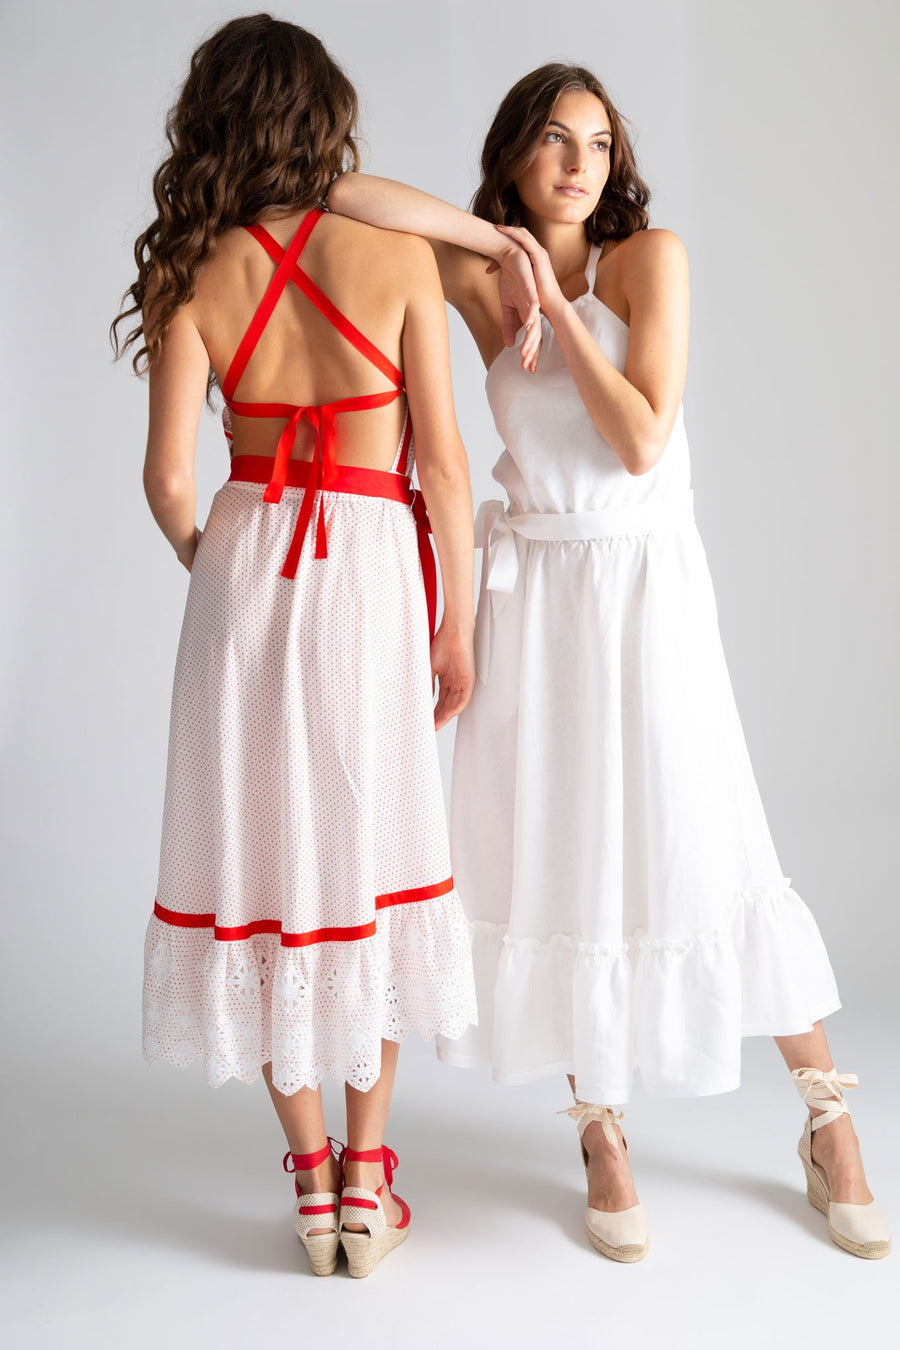 This is a photo of a woman wearing a white linen dress with halter neckline, waistline elastic and removable gross grain ribbon. It has a bottom ruffle detail that falls just above the ankle and is finished with a gross grain plain white ribbon. There is a second girl standing next to her, wearing the same dress in a red printed cotton with red gross grain ribbon and cotton embroidery details at the skirt hem.